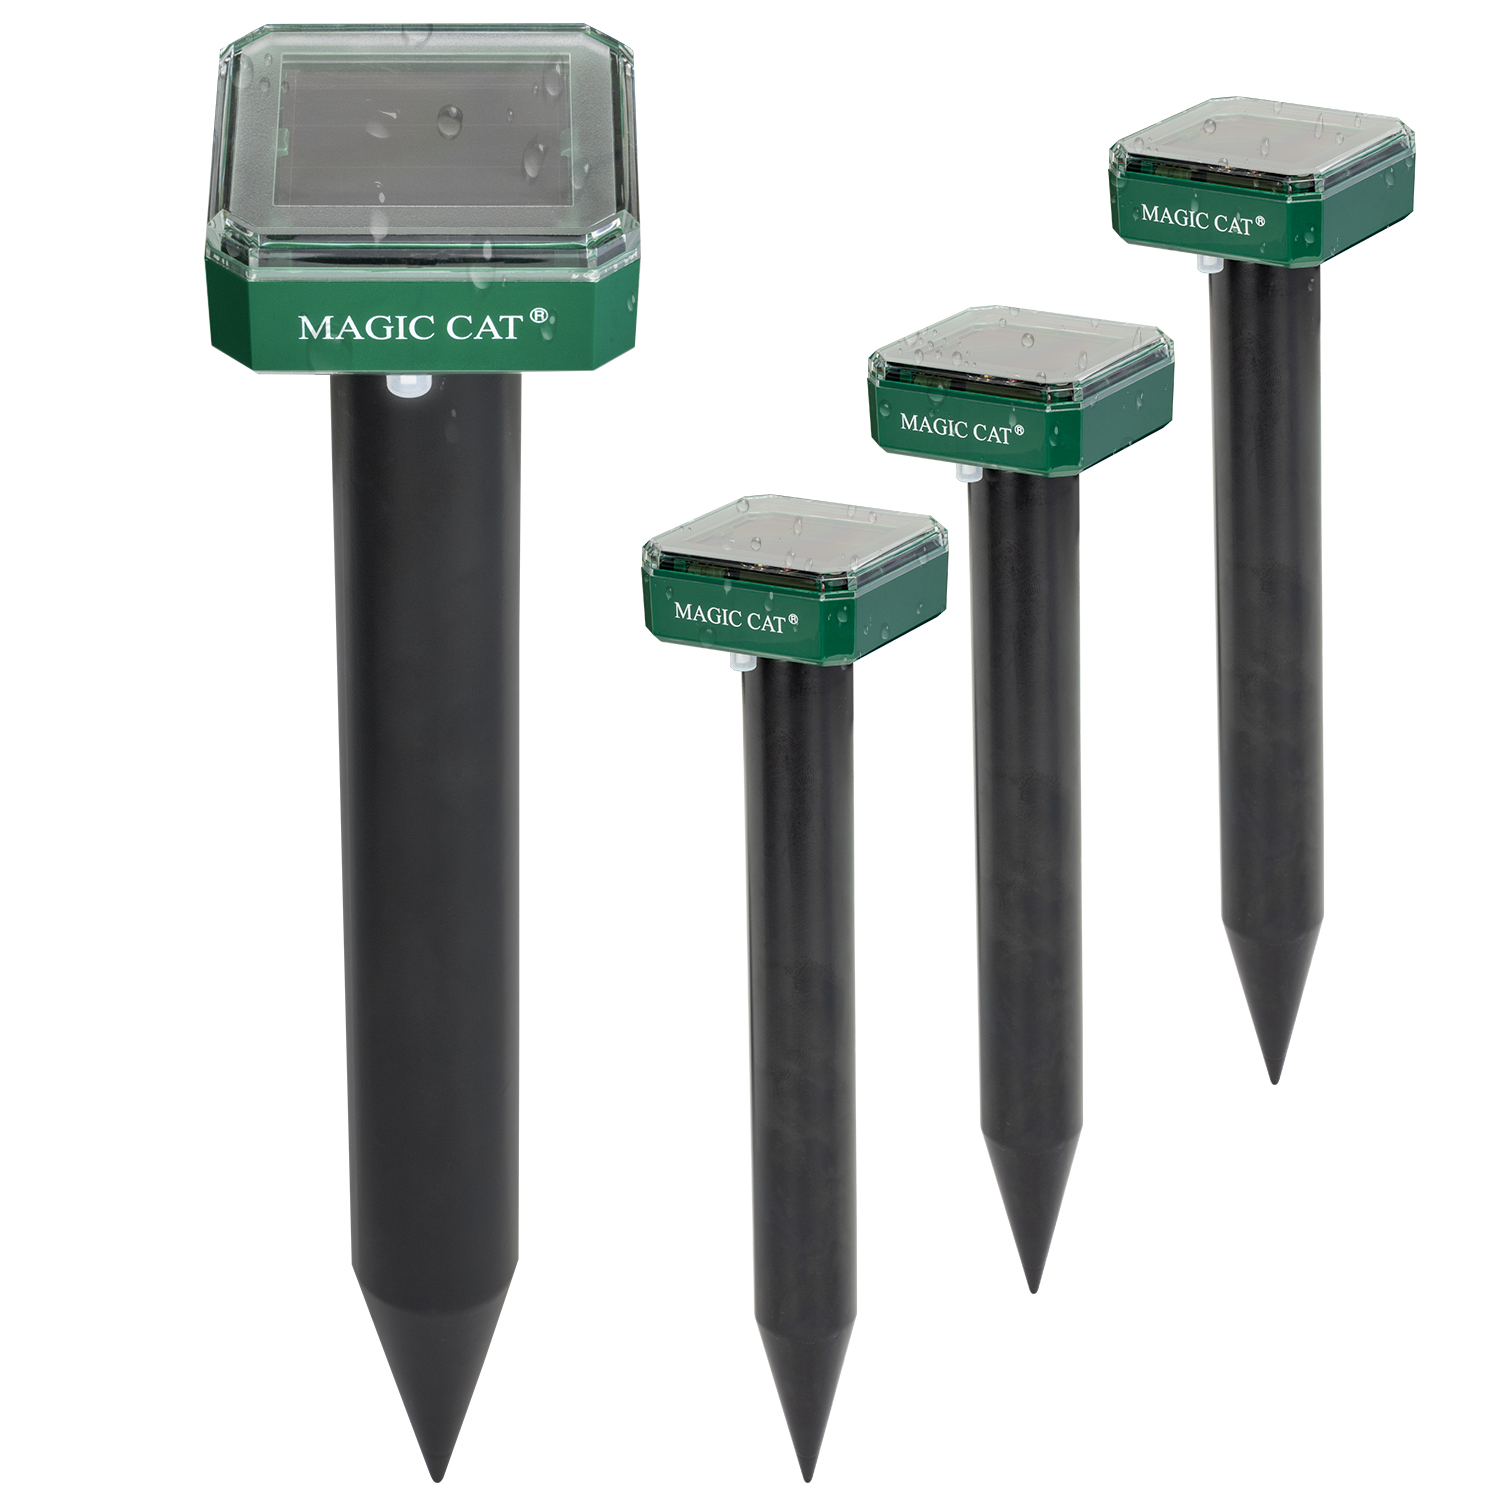 MAGIC CAT Solar Mole Repellent, 4 Pack Ultrasonic & Solar Powered Gopher Repellent, Waterproof Sonic Groundhog Repeller Rodent Gopher Deterrent Vole Chaser for Lawn, Yard & Garden of Outdoor Use